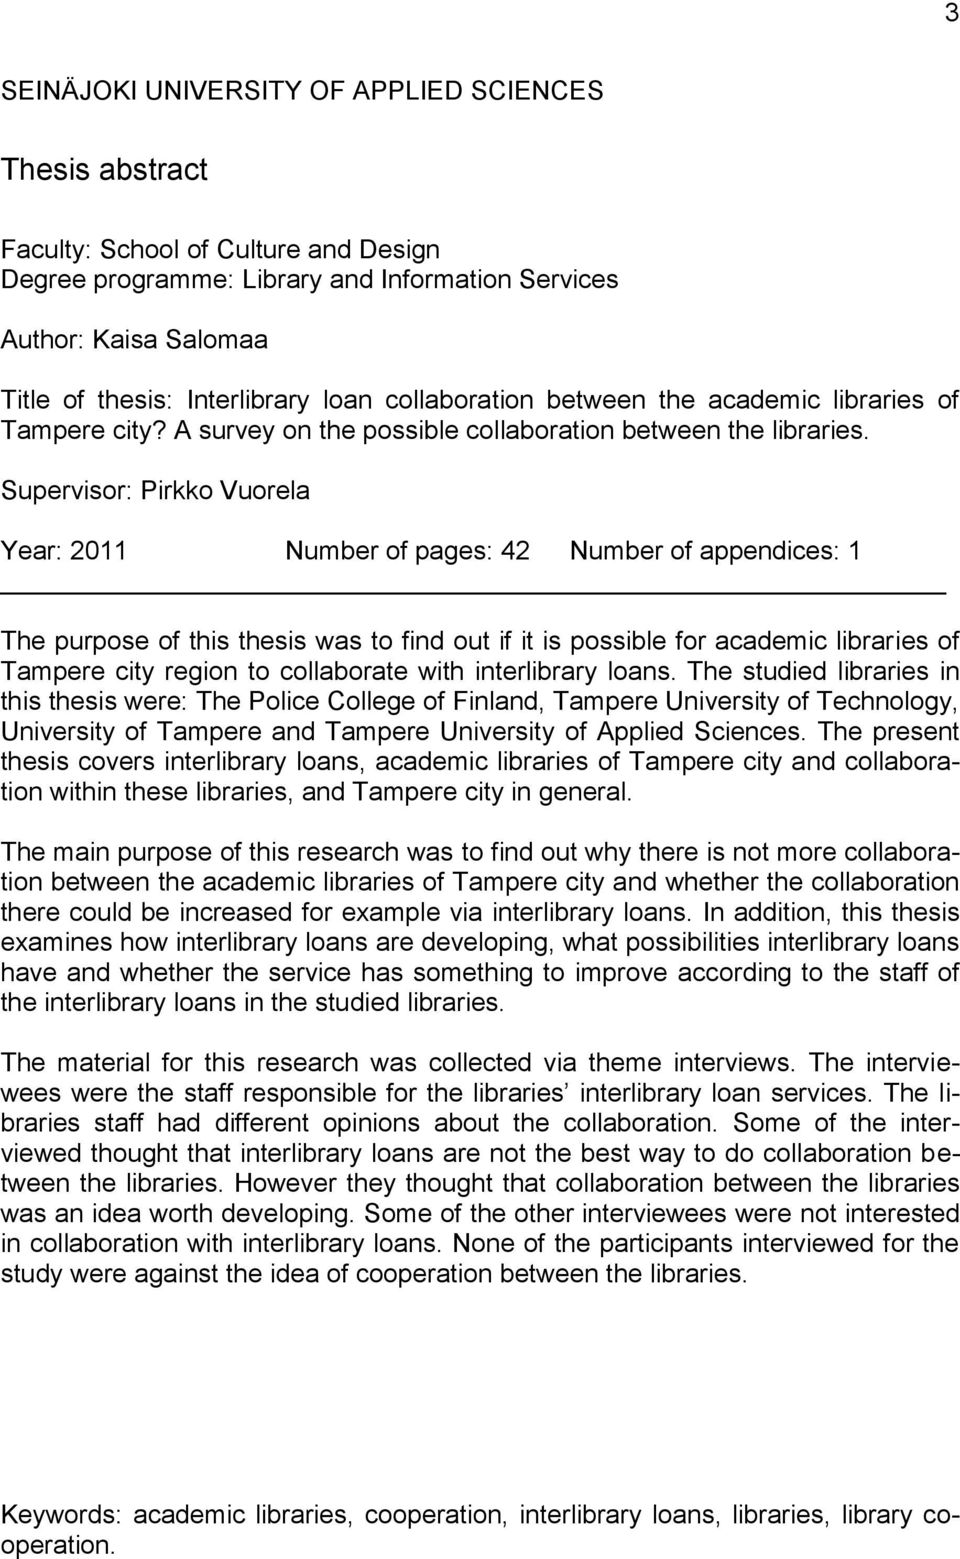 Supervisor: Pirkko Vuorela Year: 2011 Number of pages: 42 Number of appendices: 1 The purpose of this thesis was to find out if it is possible for academic libraries of Tampere city region to